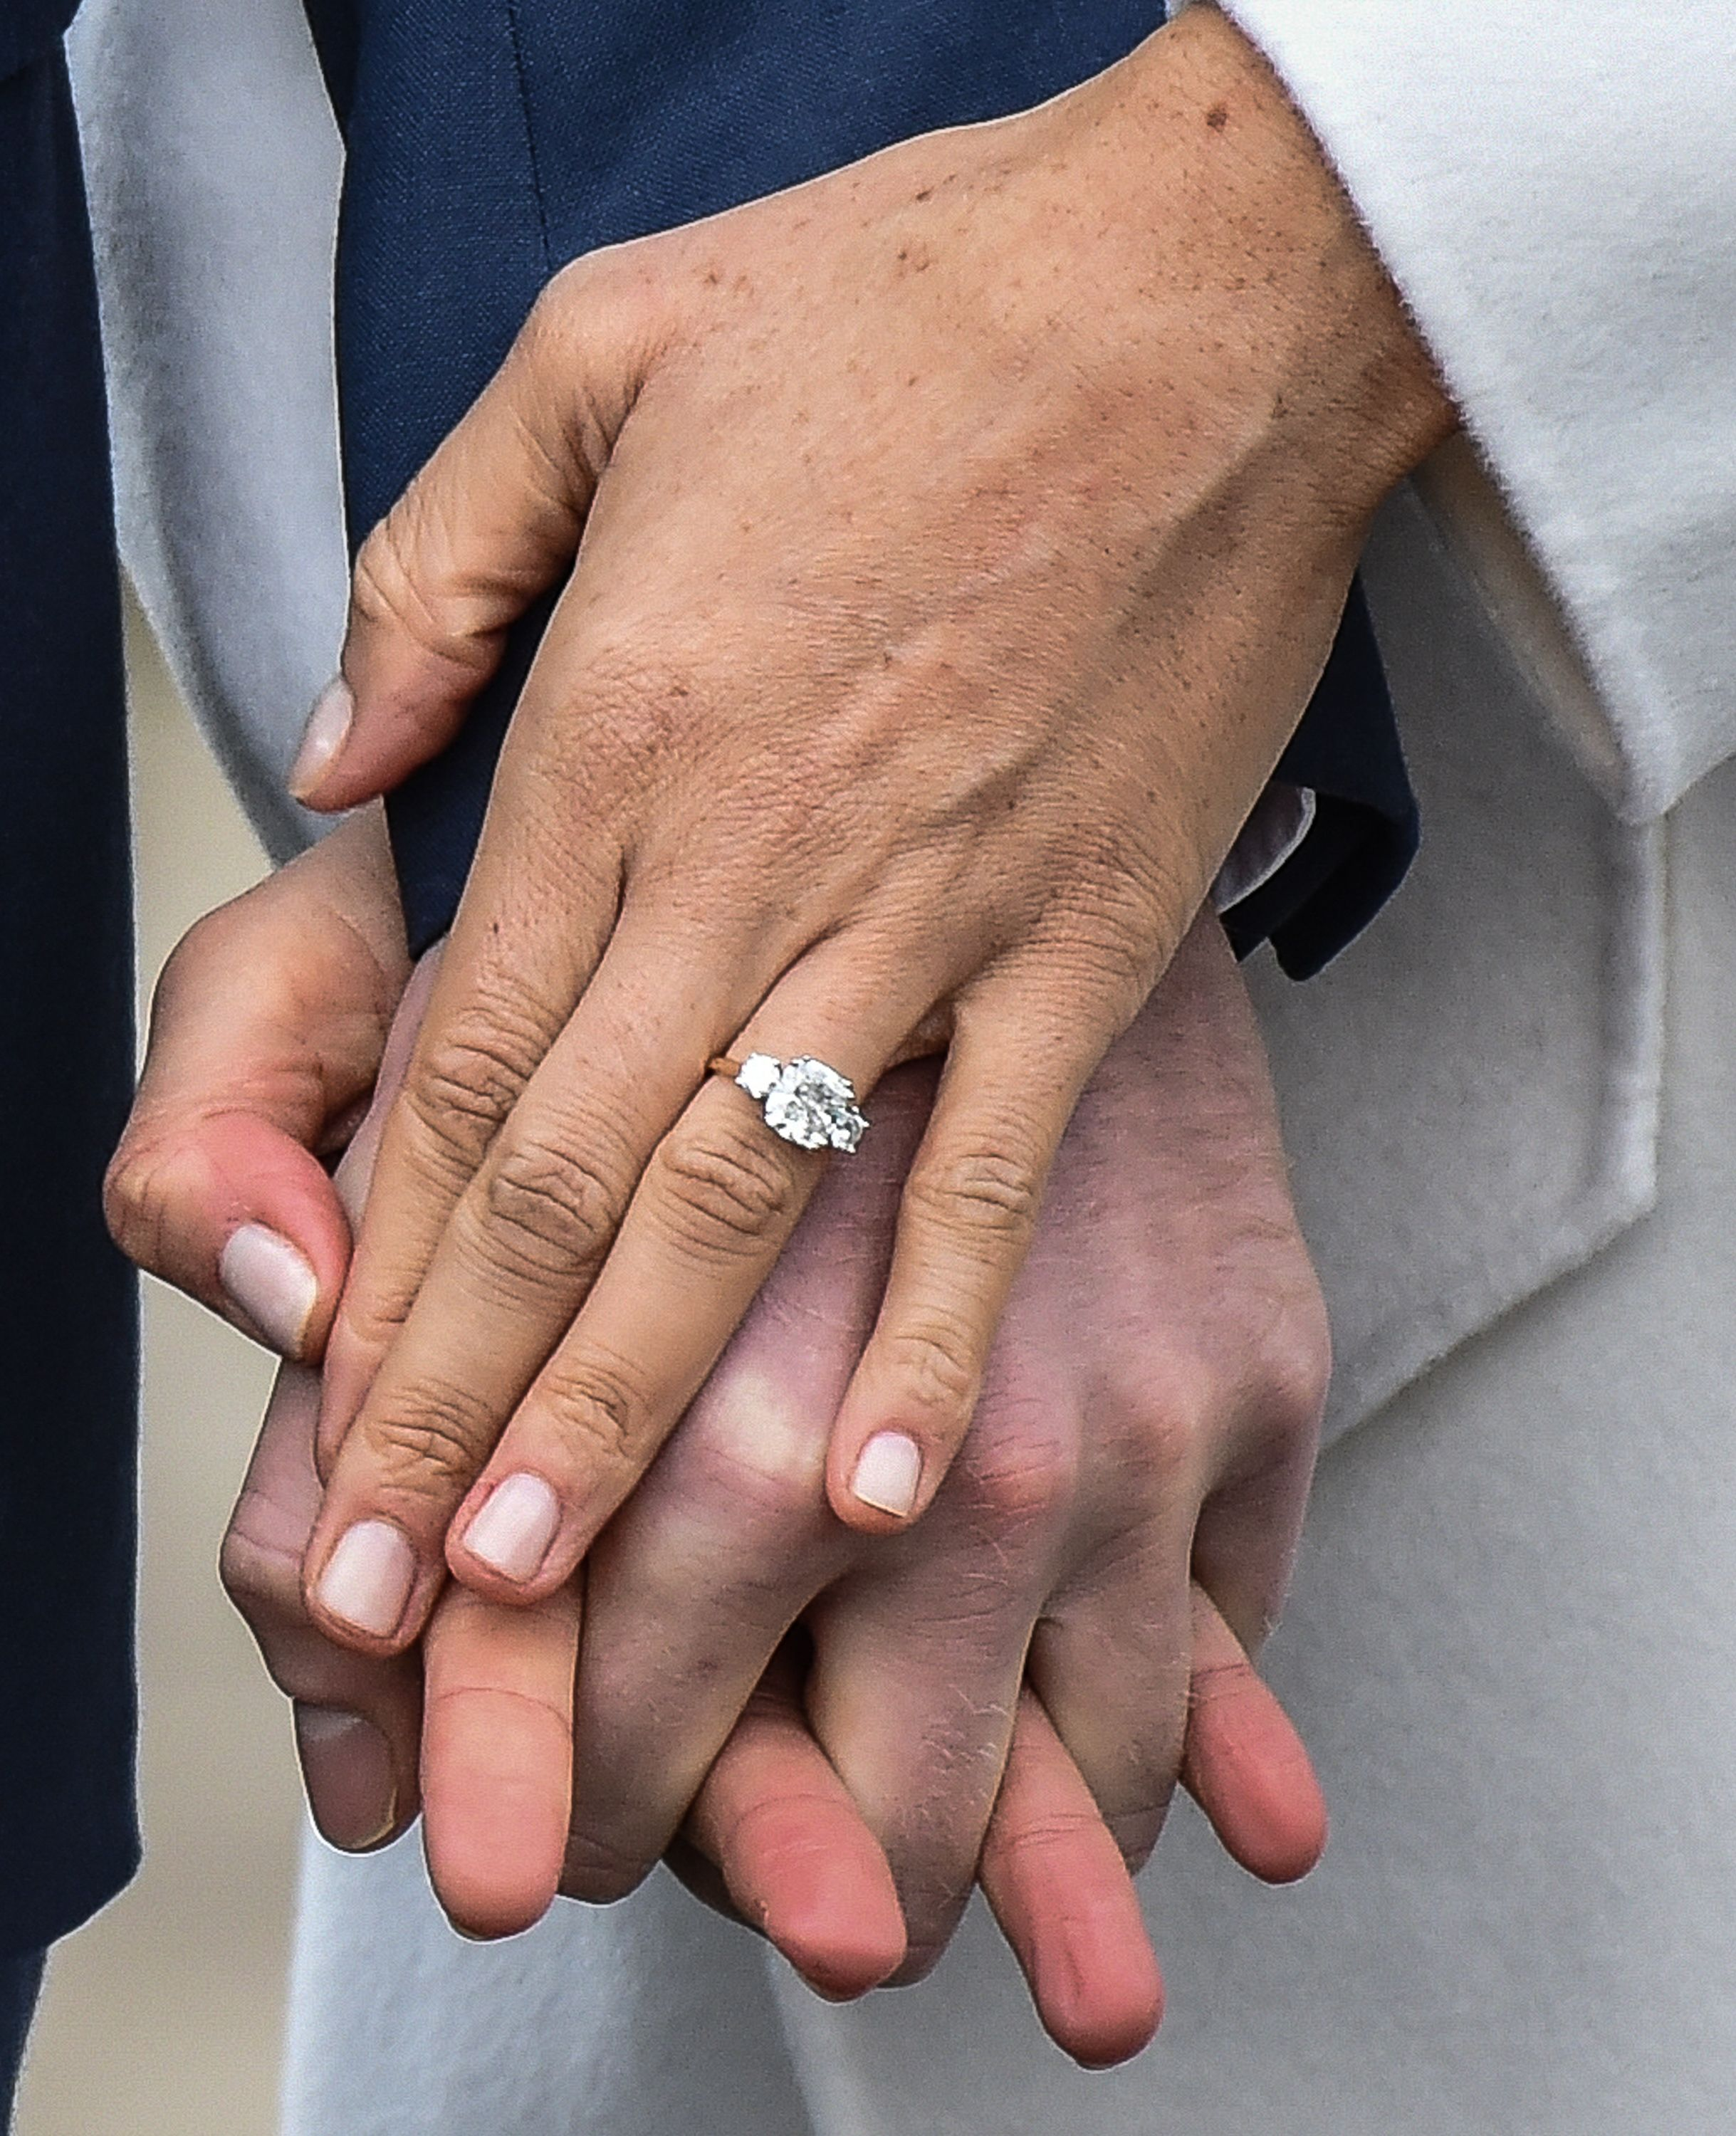 Meghan Markle's engagement ring / Getty Images